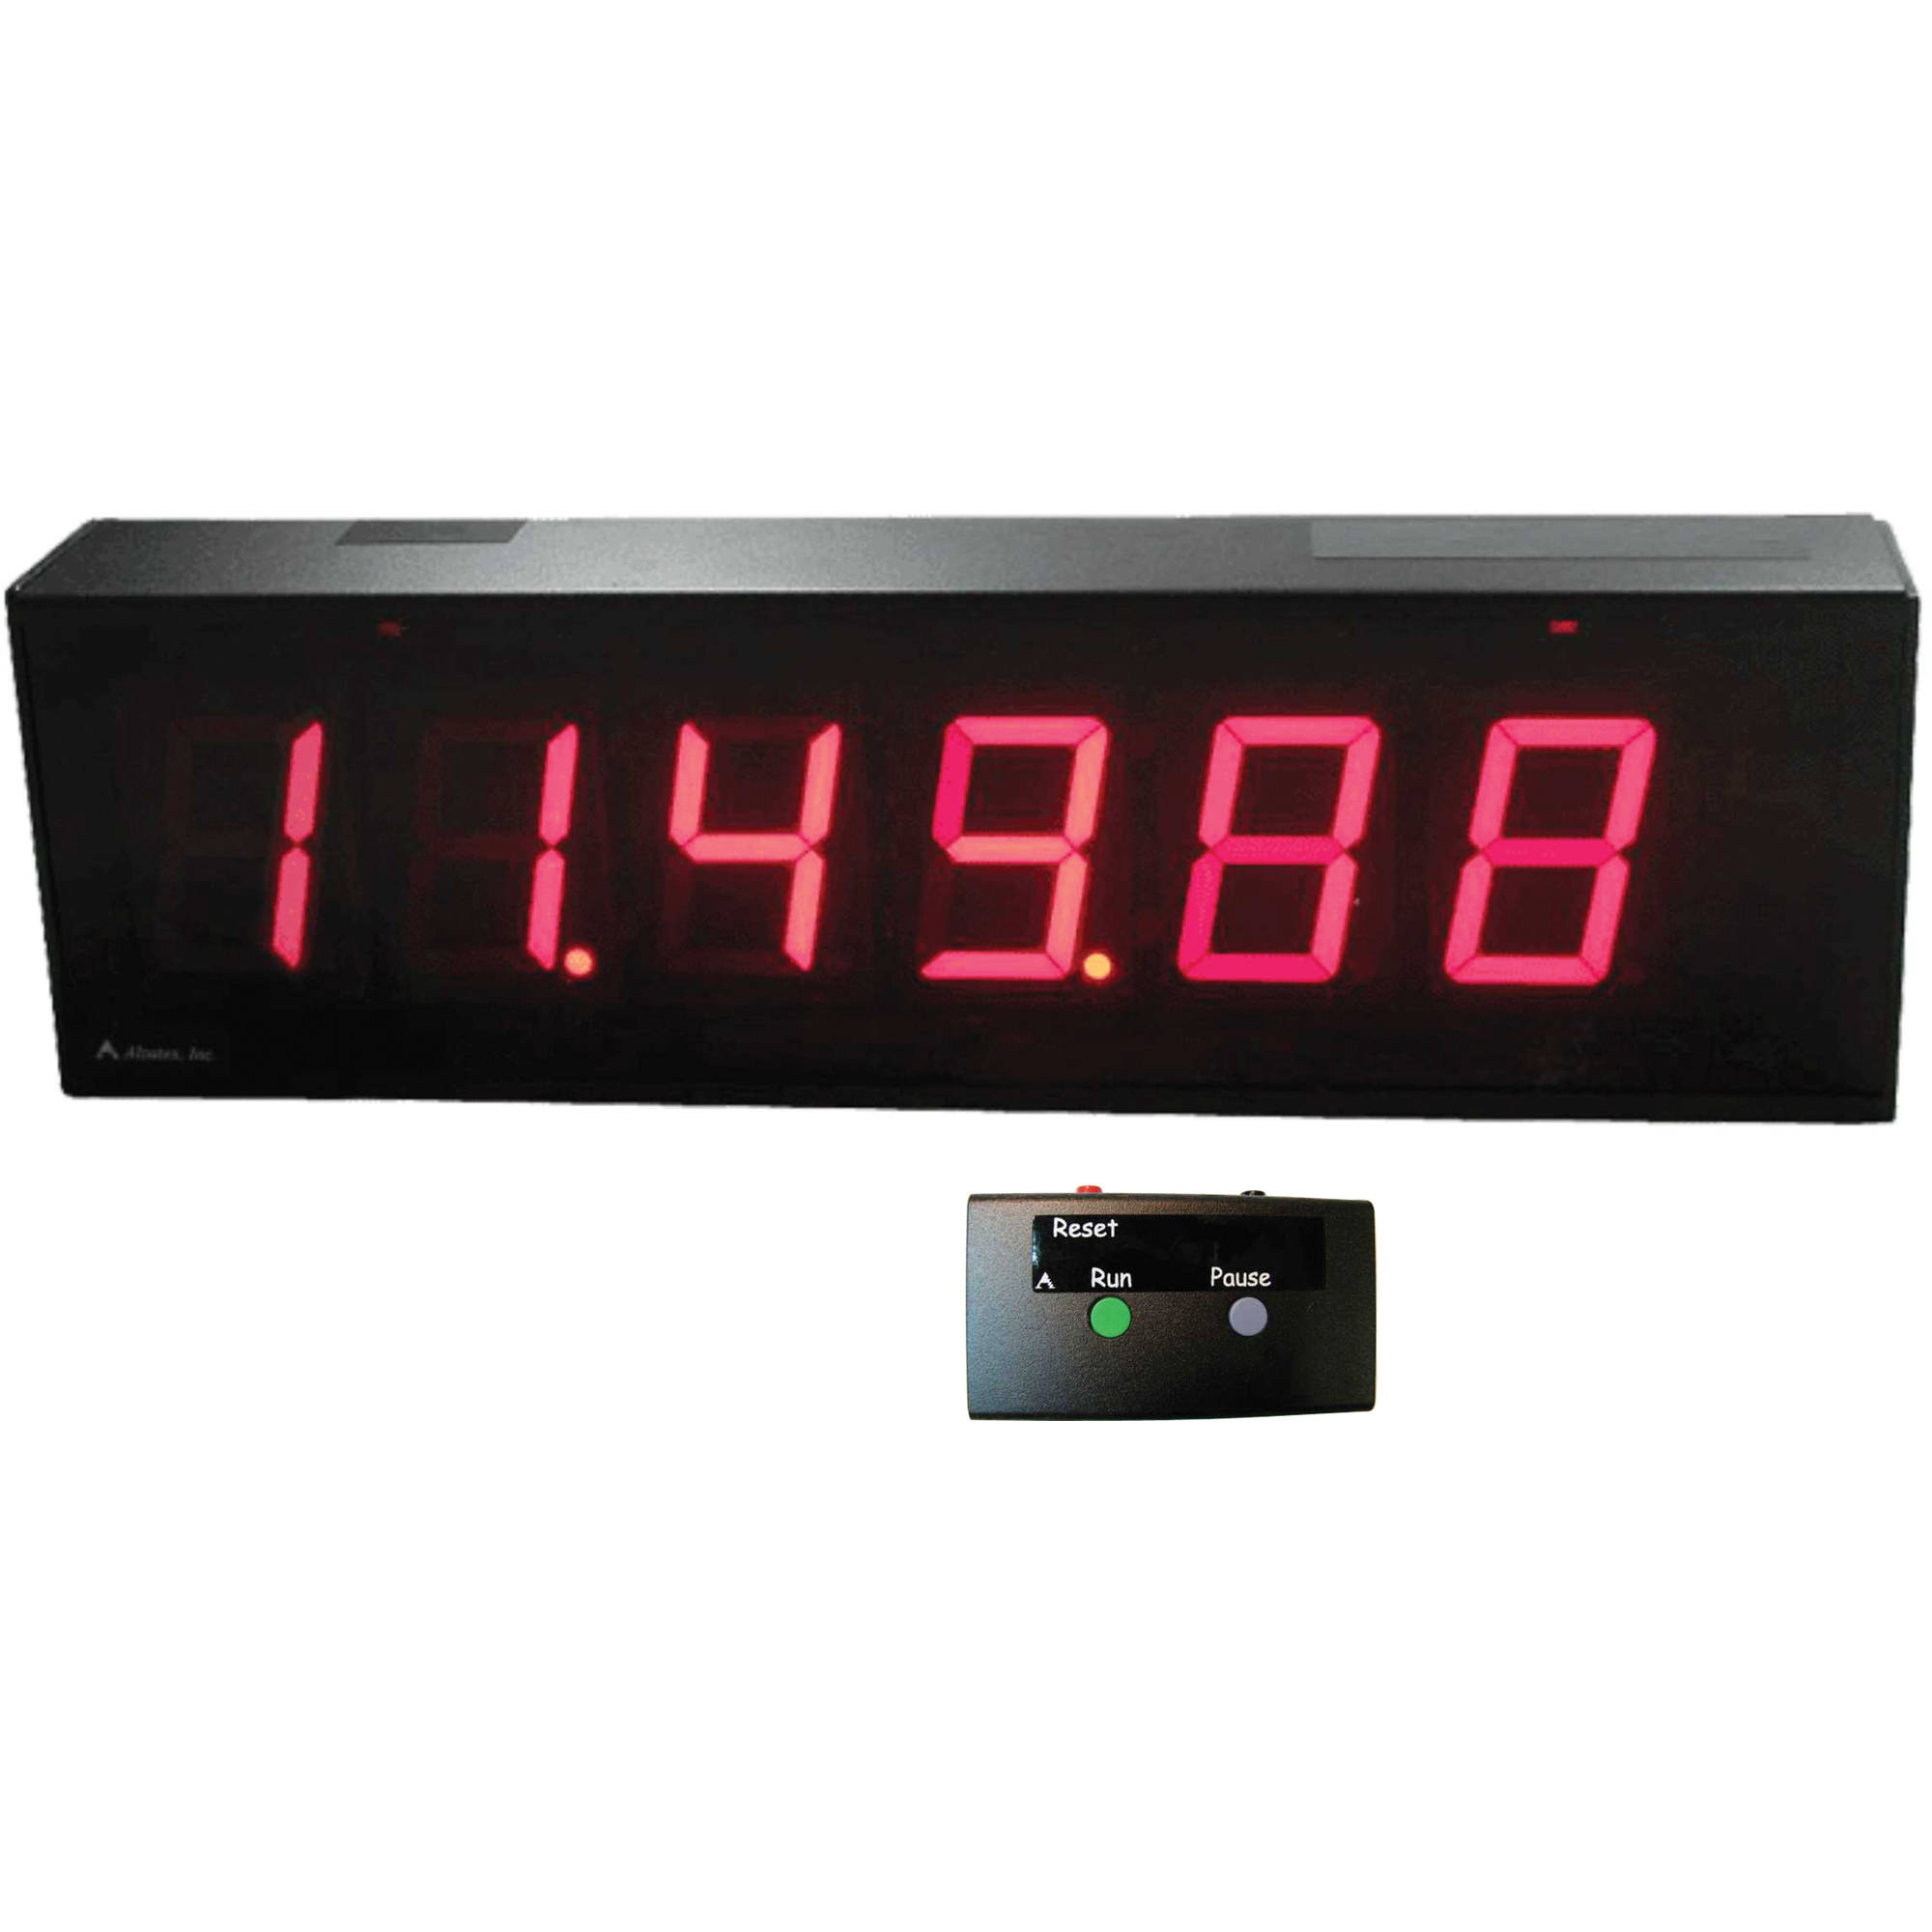 alzatex DSP256B_U 6- Digit Race Clock DSP256B_U B&H Photo Video